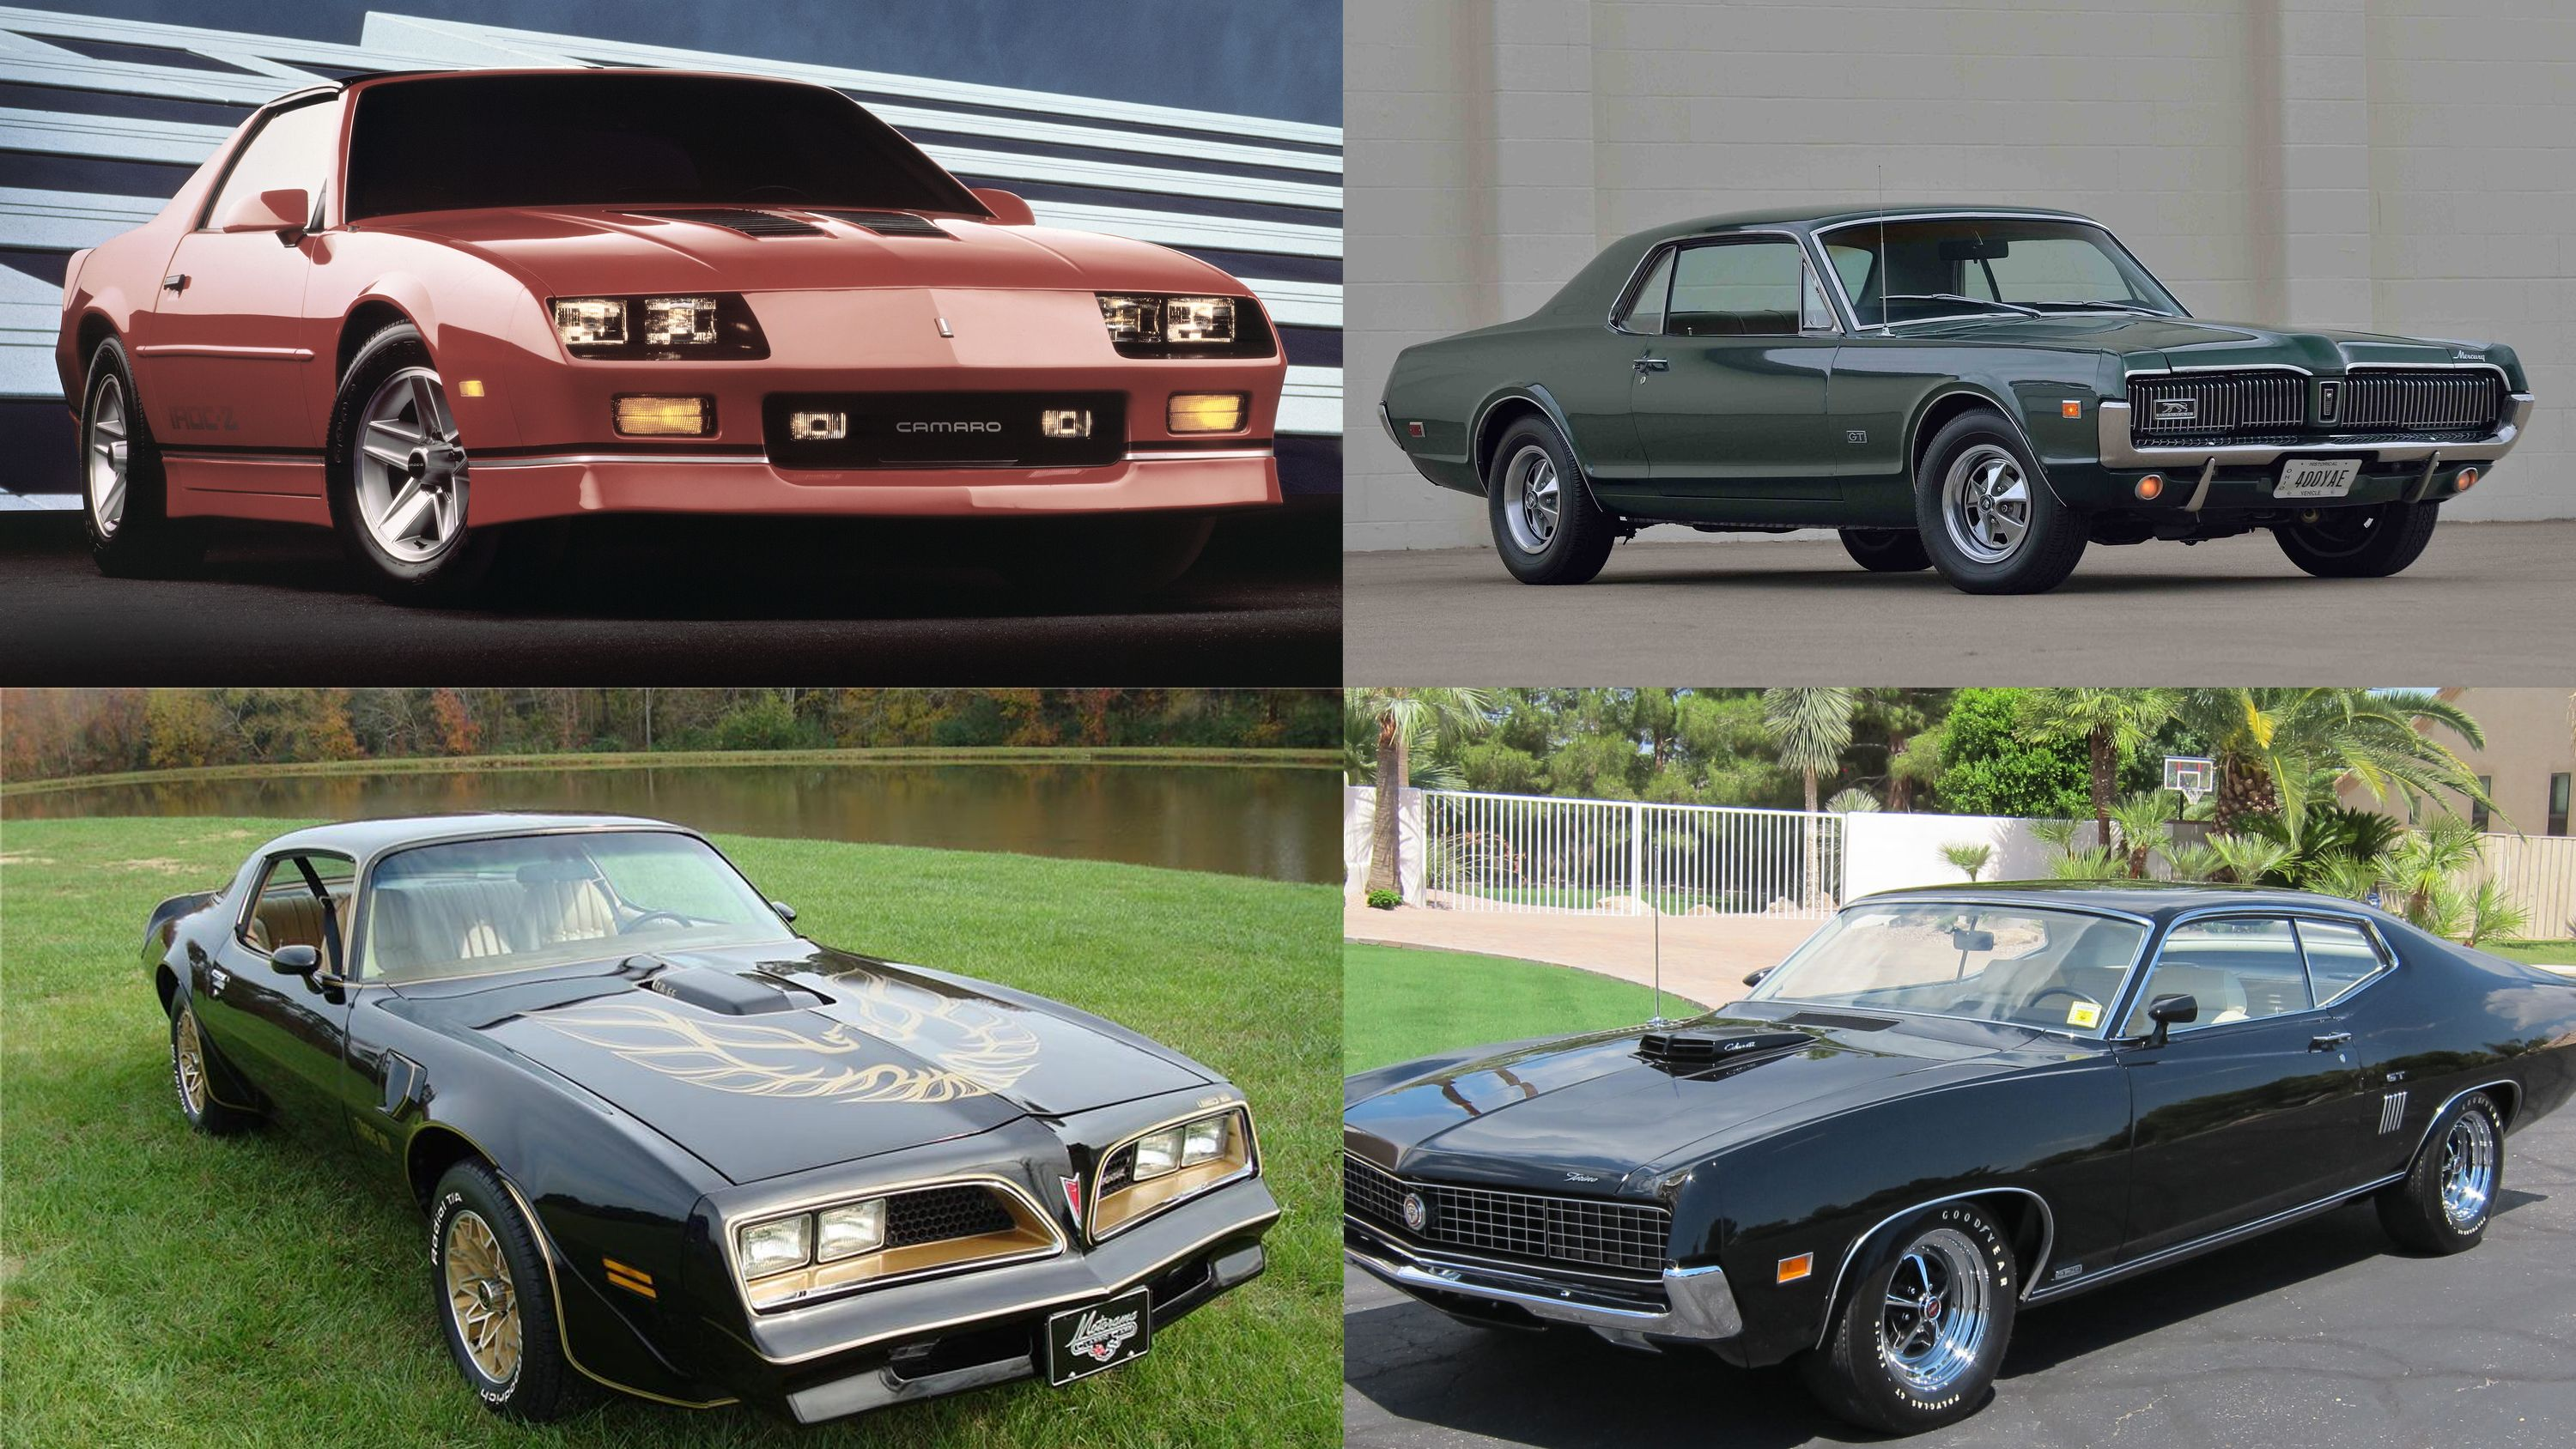 10 Cool Muscle Cars You Can Buy For Less Than 20,000